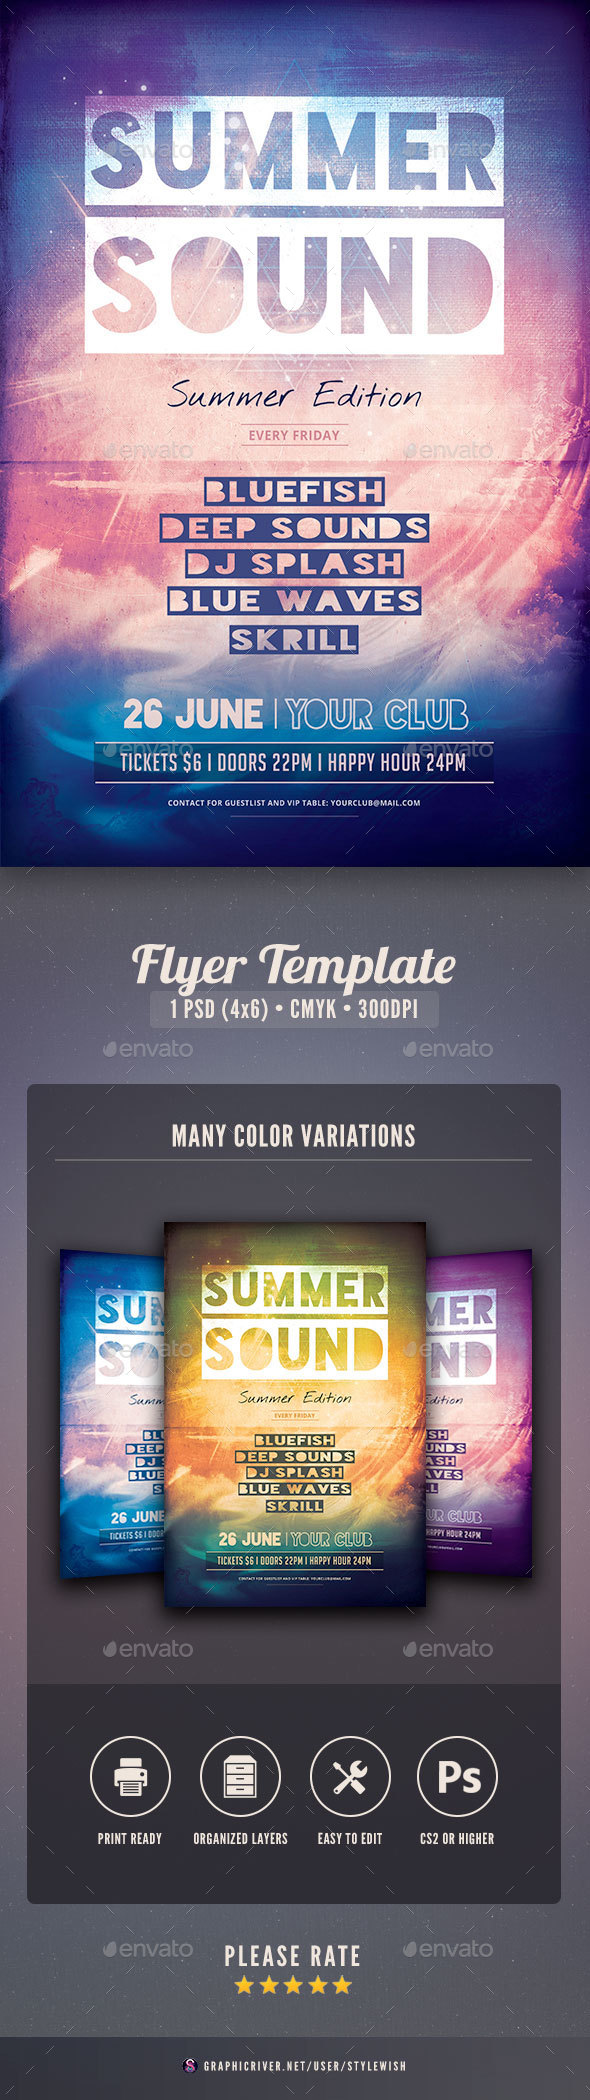 Summer Sound Flyer - Clubs & Parties Events